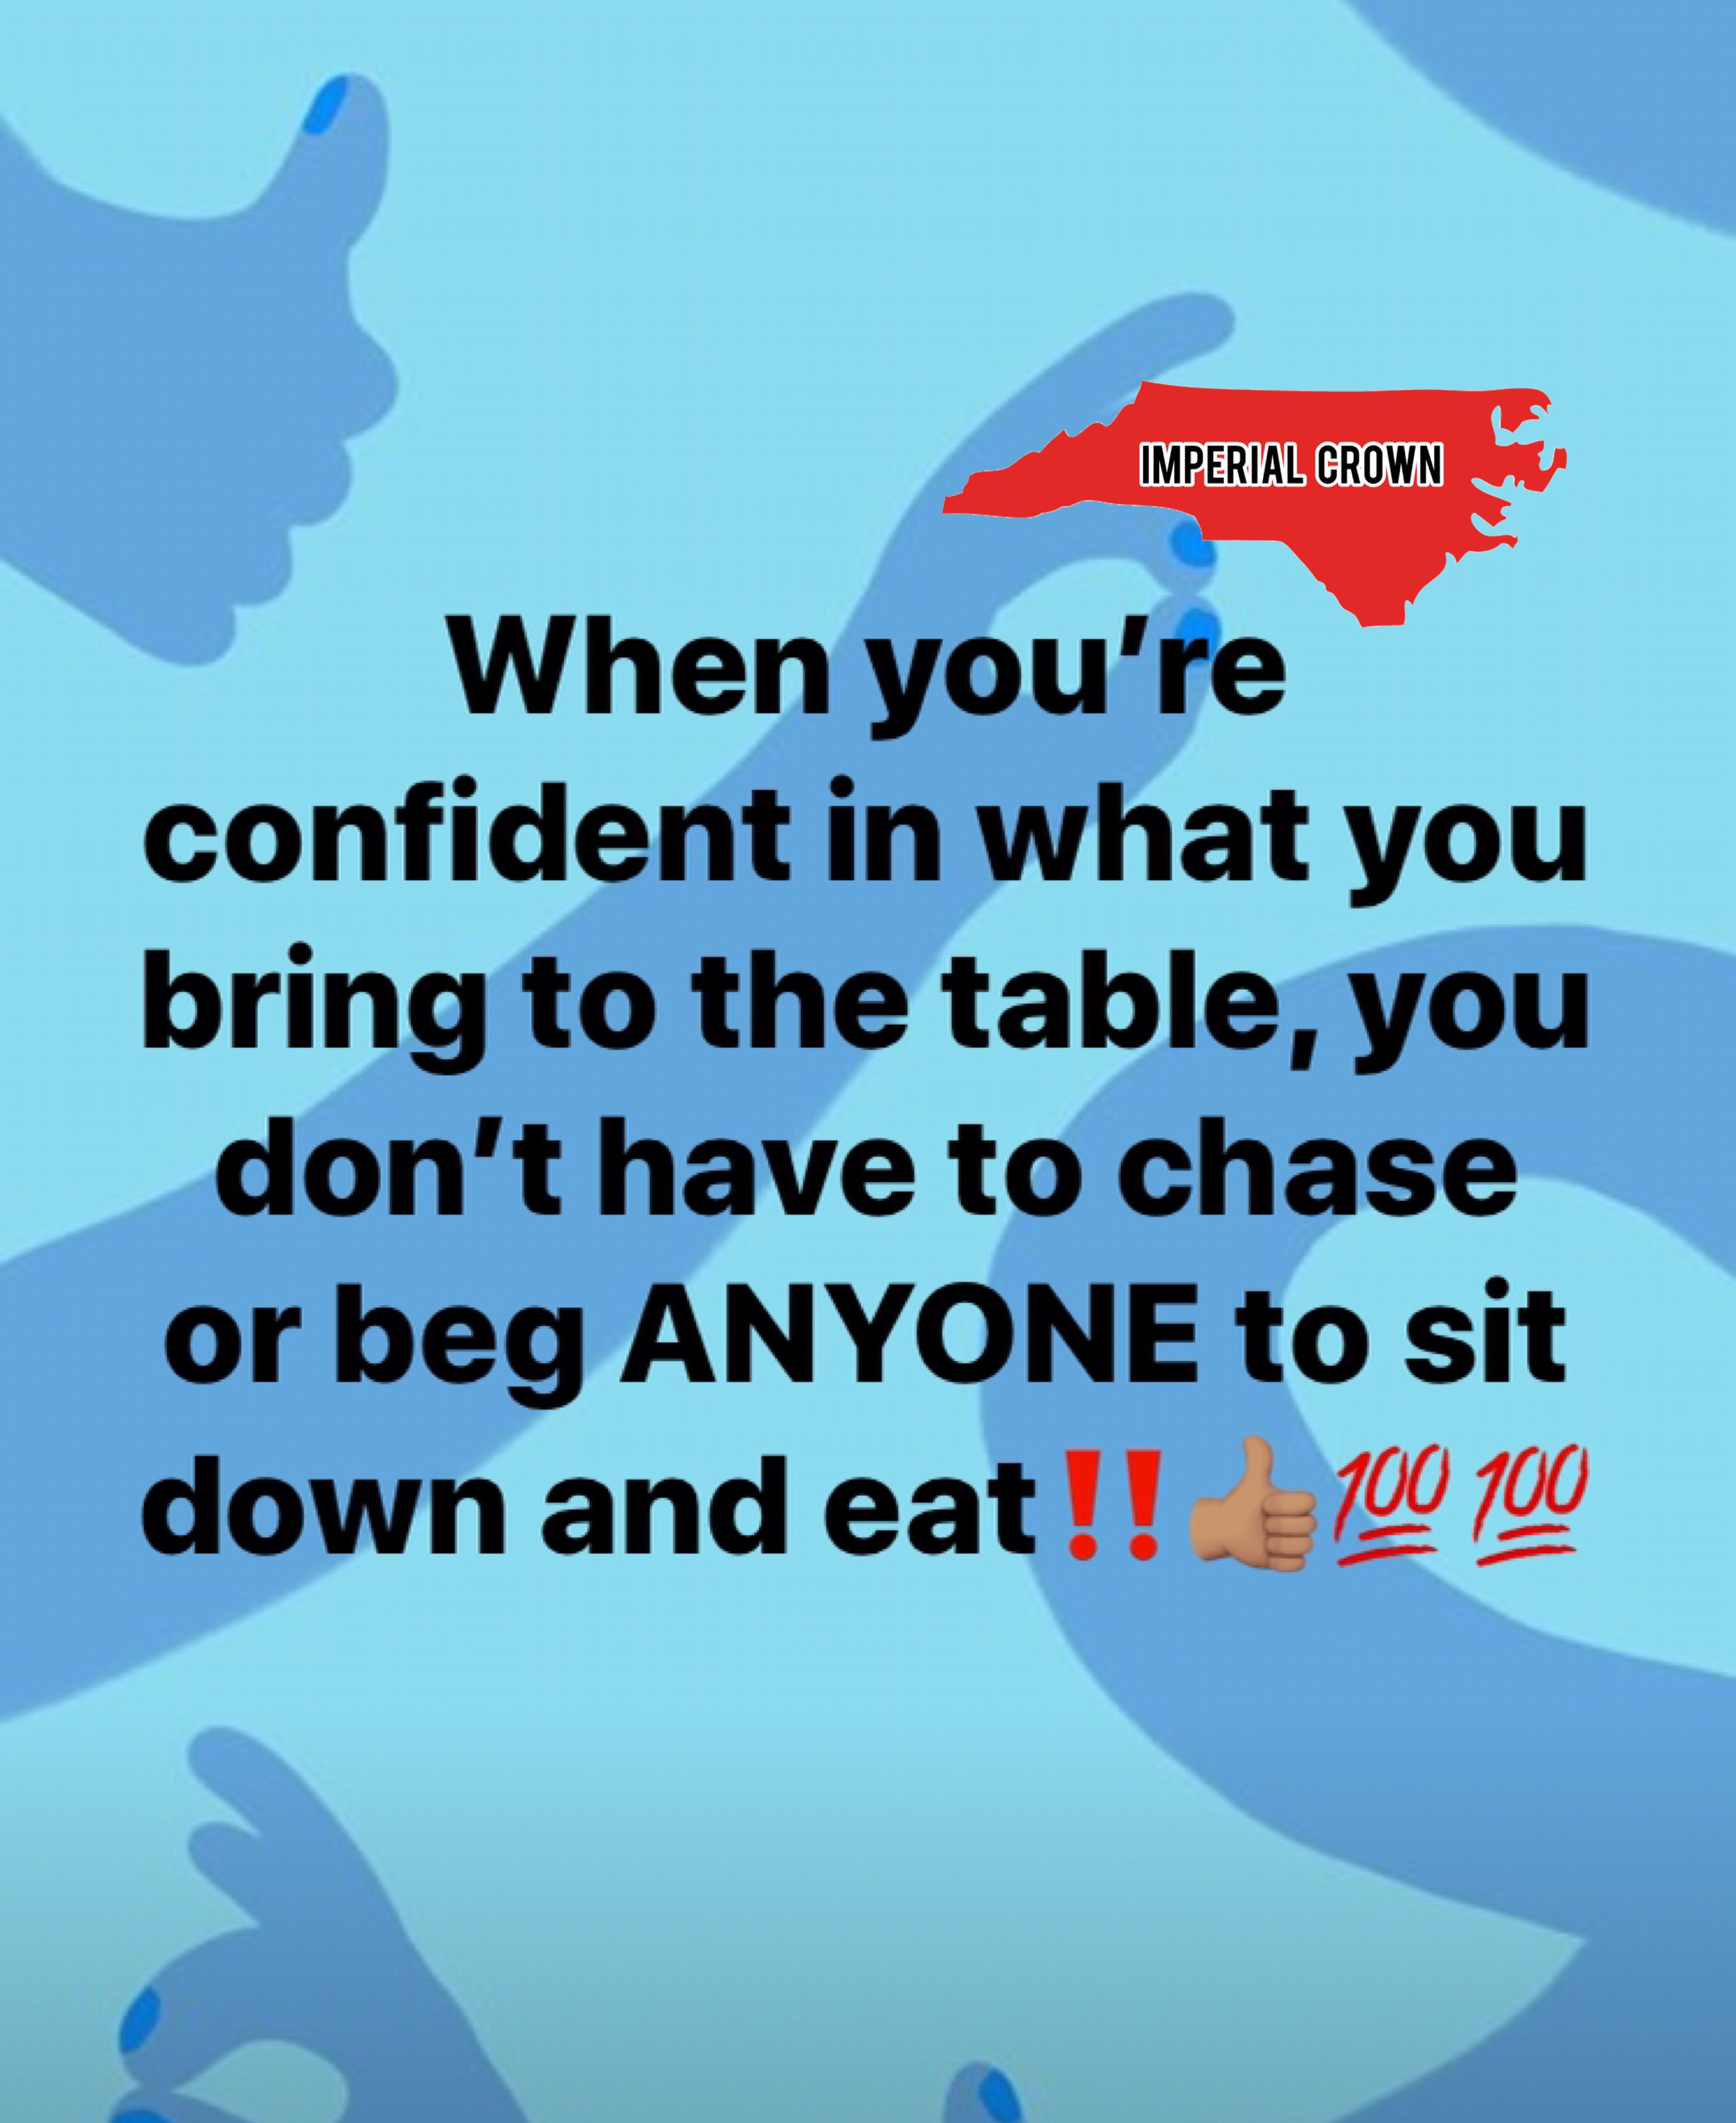 When you're confident in what you bring to the table…..